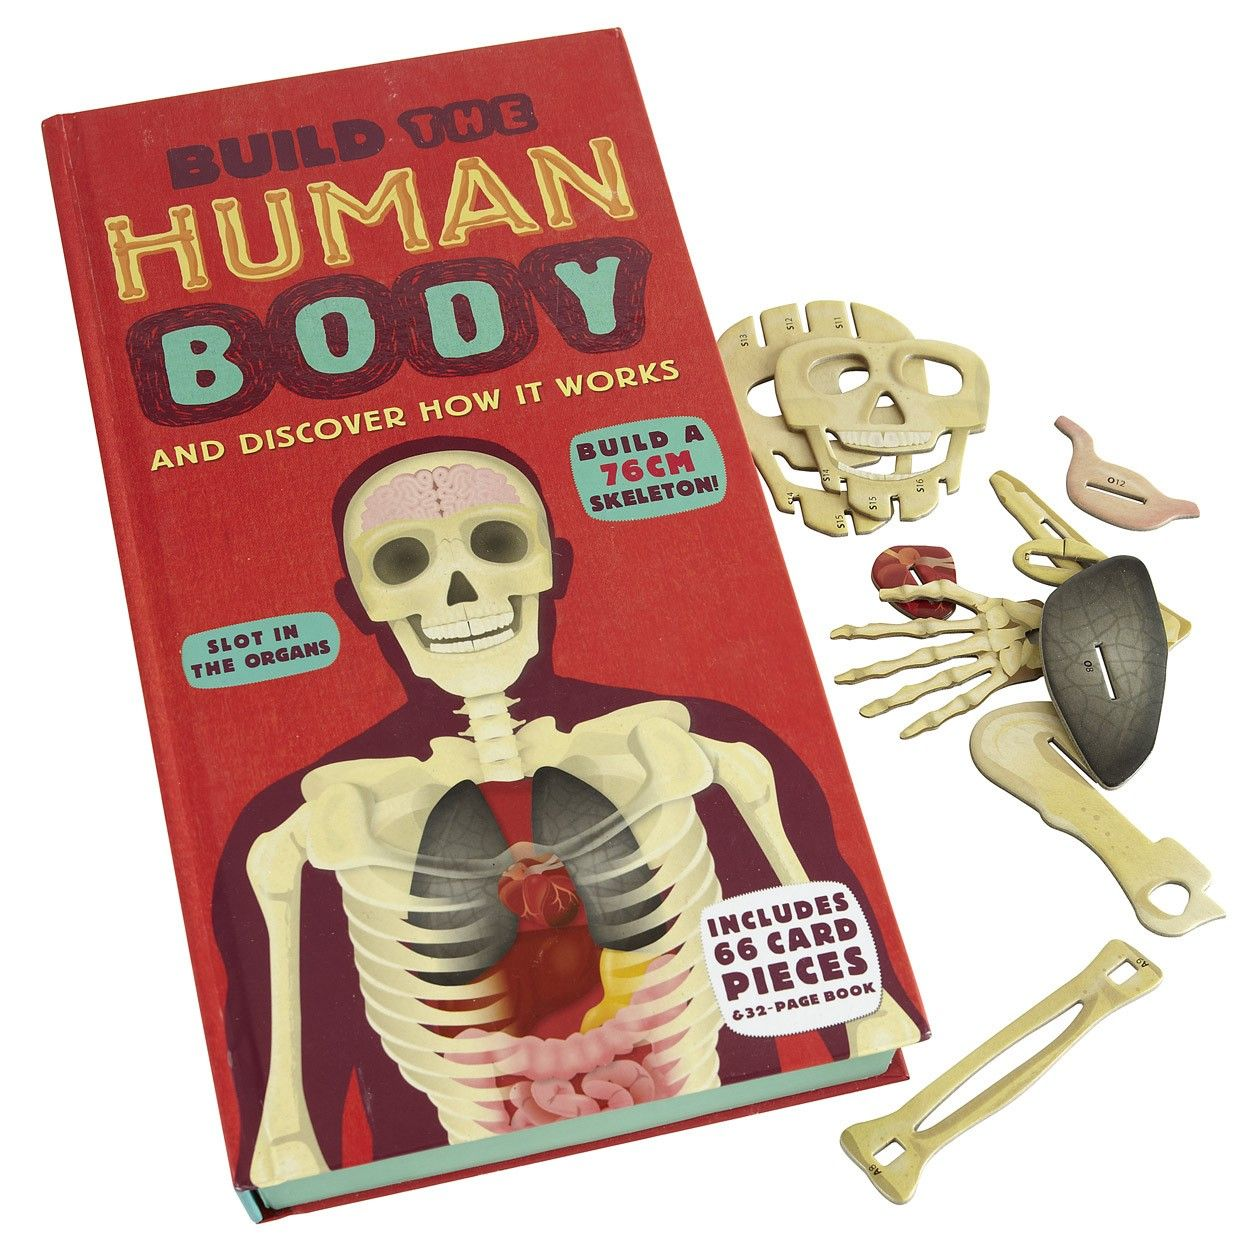 Build A Human Body Book | Traditional Children's Toys and Gifts | ASPACE